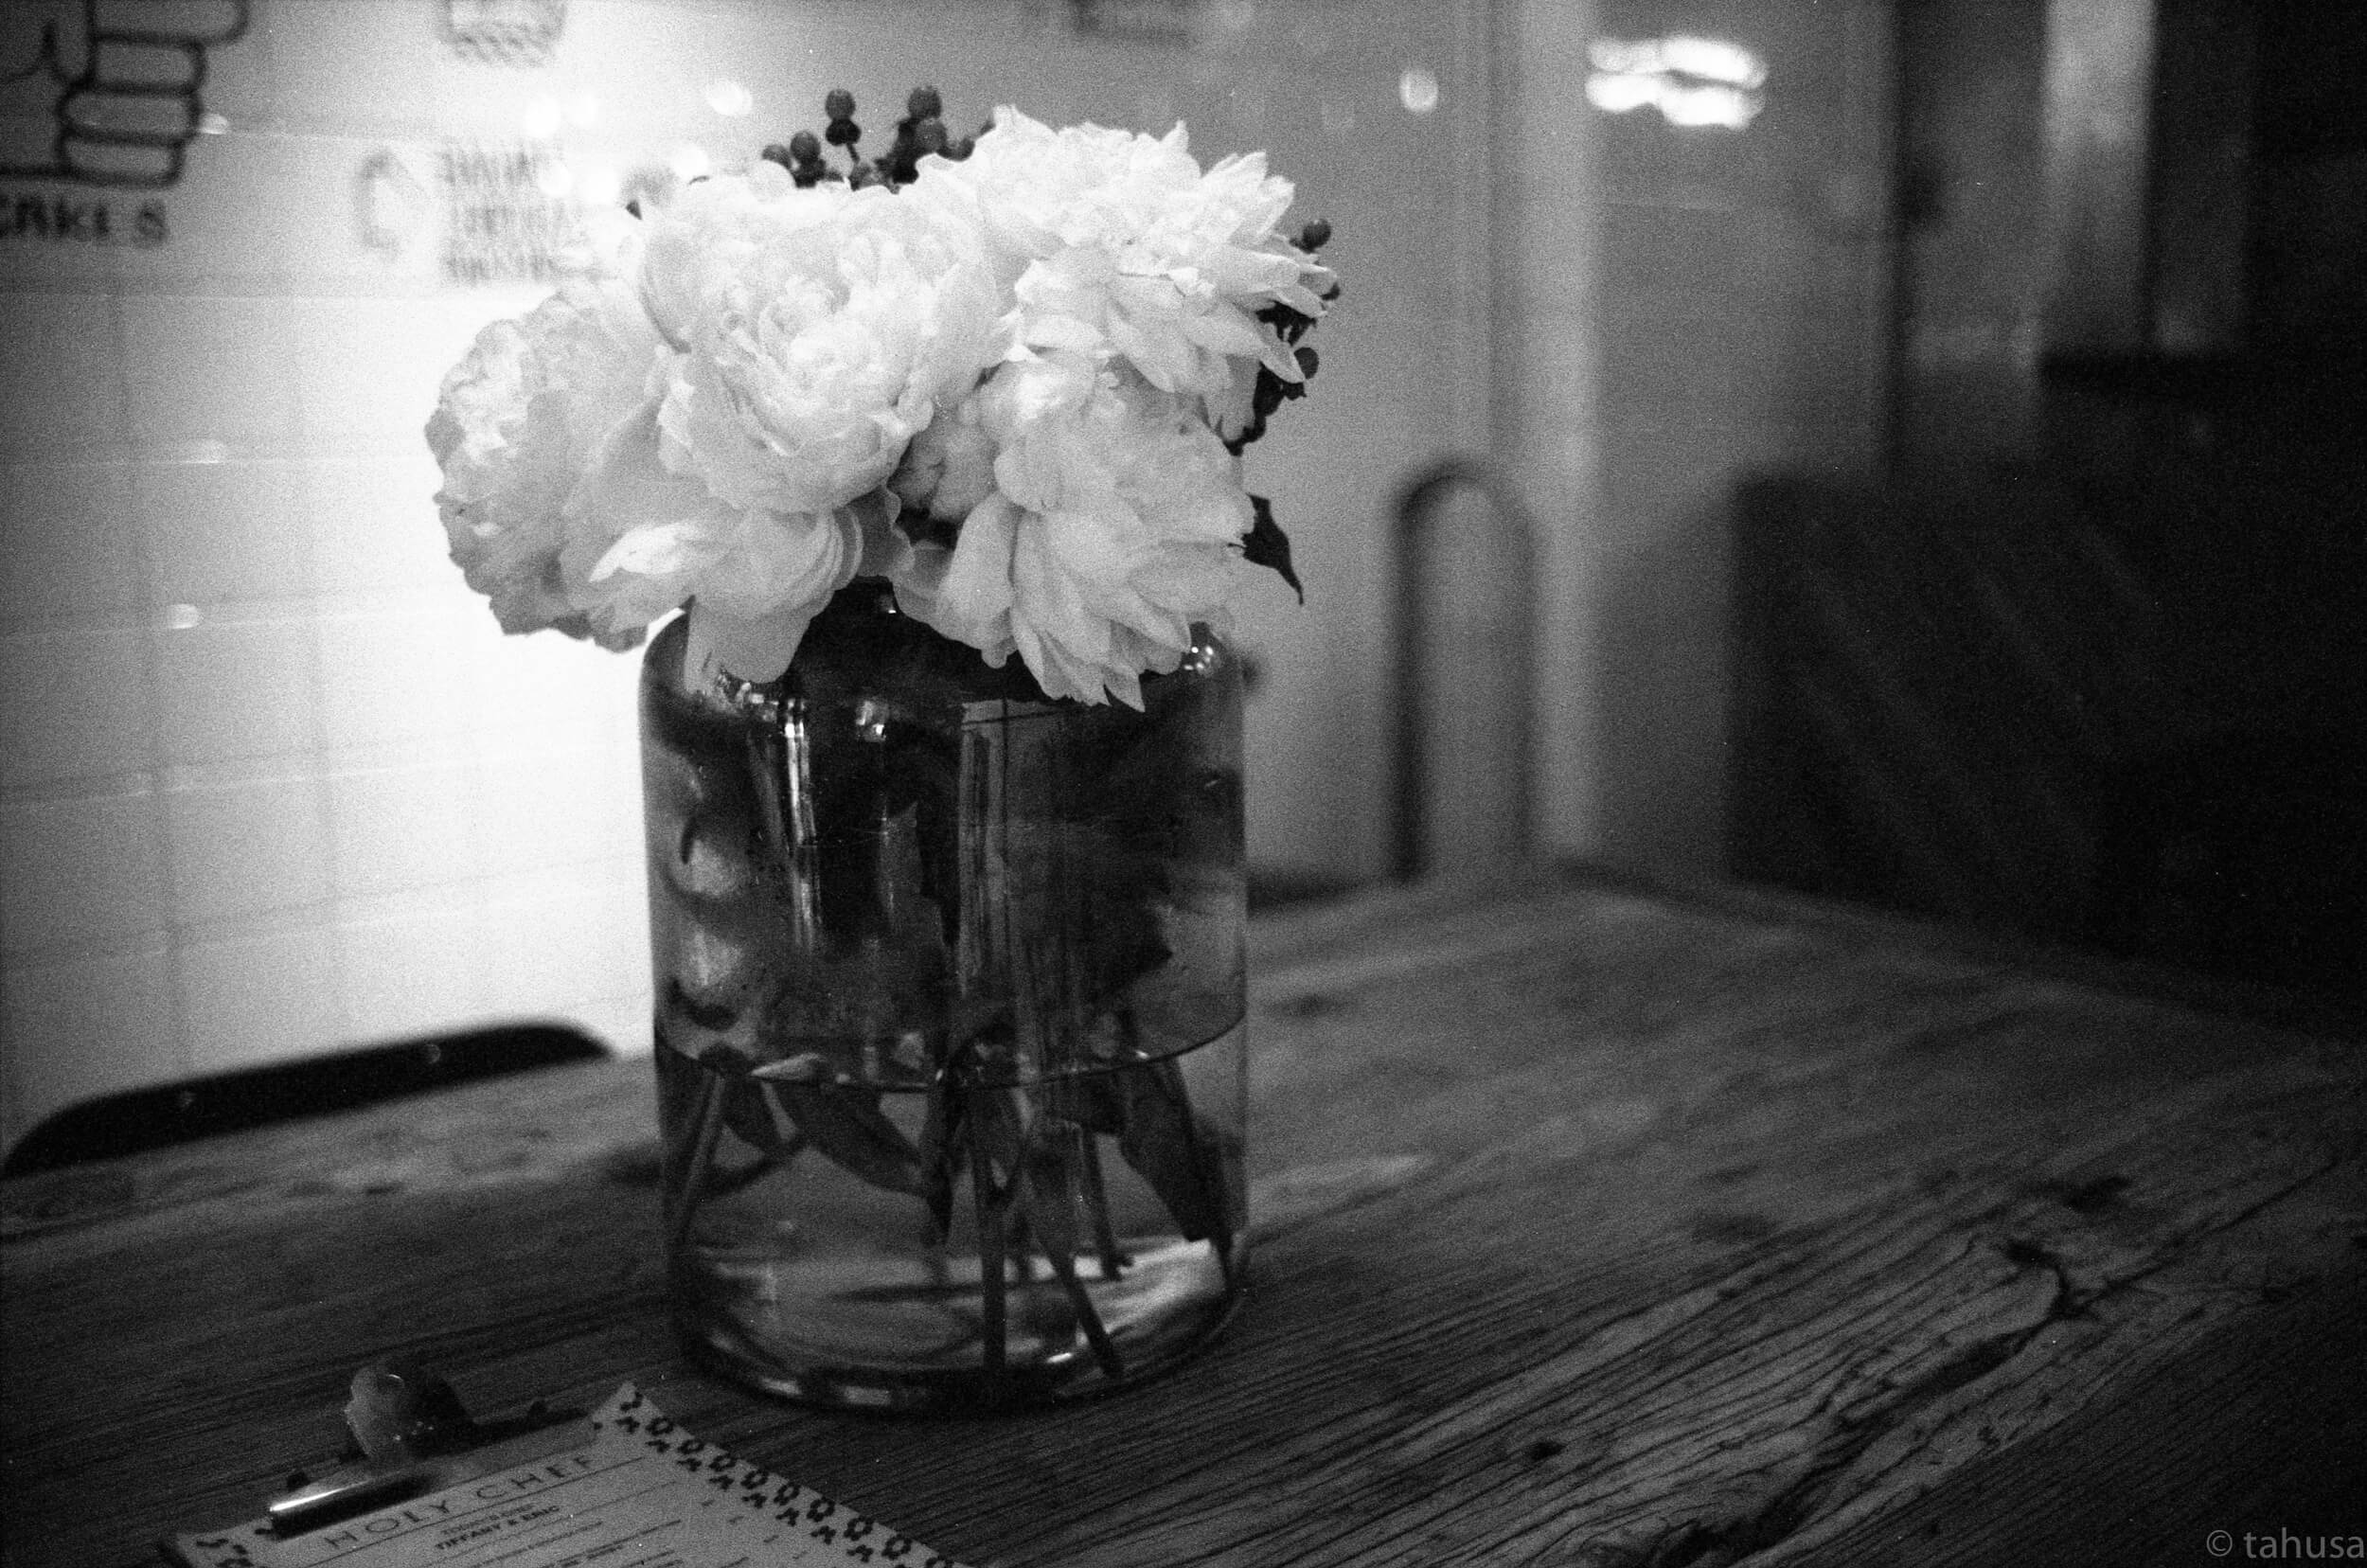 Holy-Chef-Fresh-flower-restaurant-Black-and-white-analog-film-leica-summicron-35mm-f2-35-v1-Kentmere-400-iso400-film-review